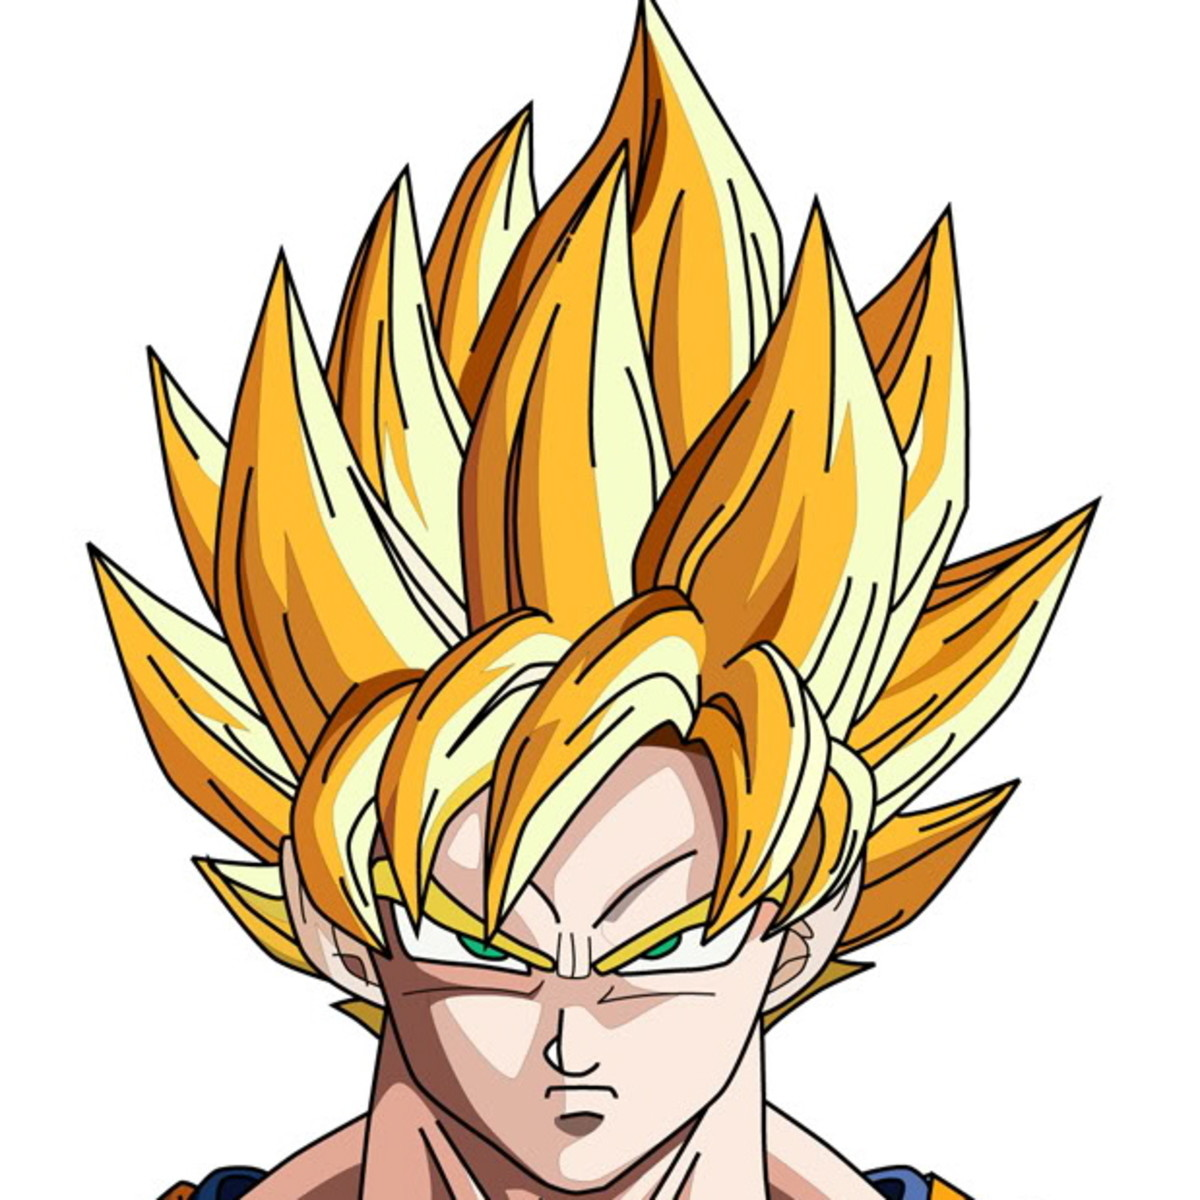 Goku spiky hair